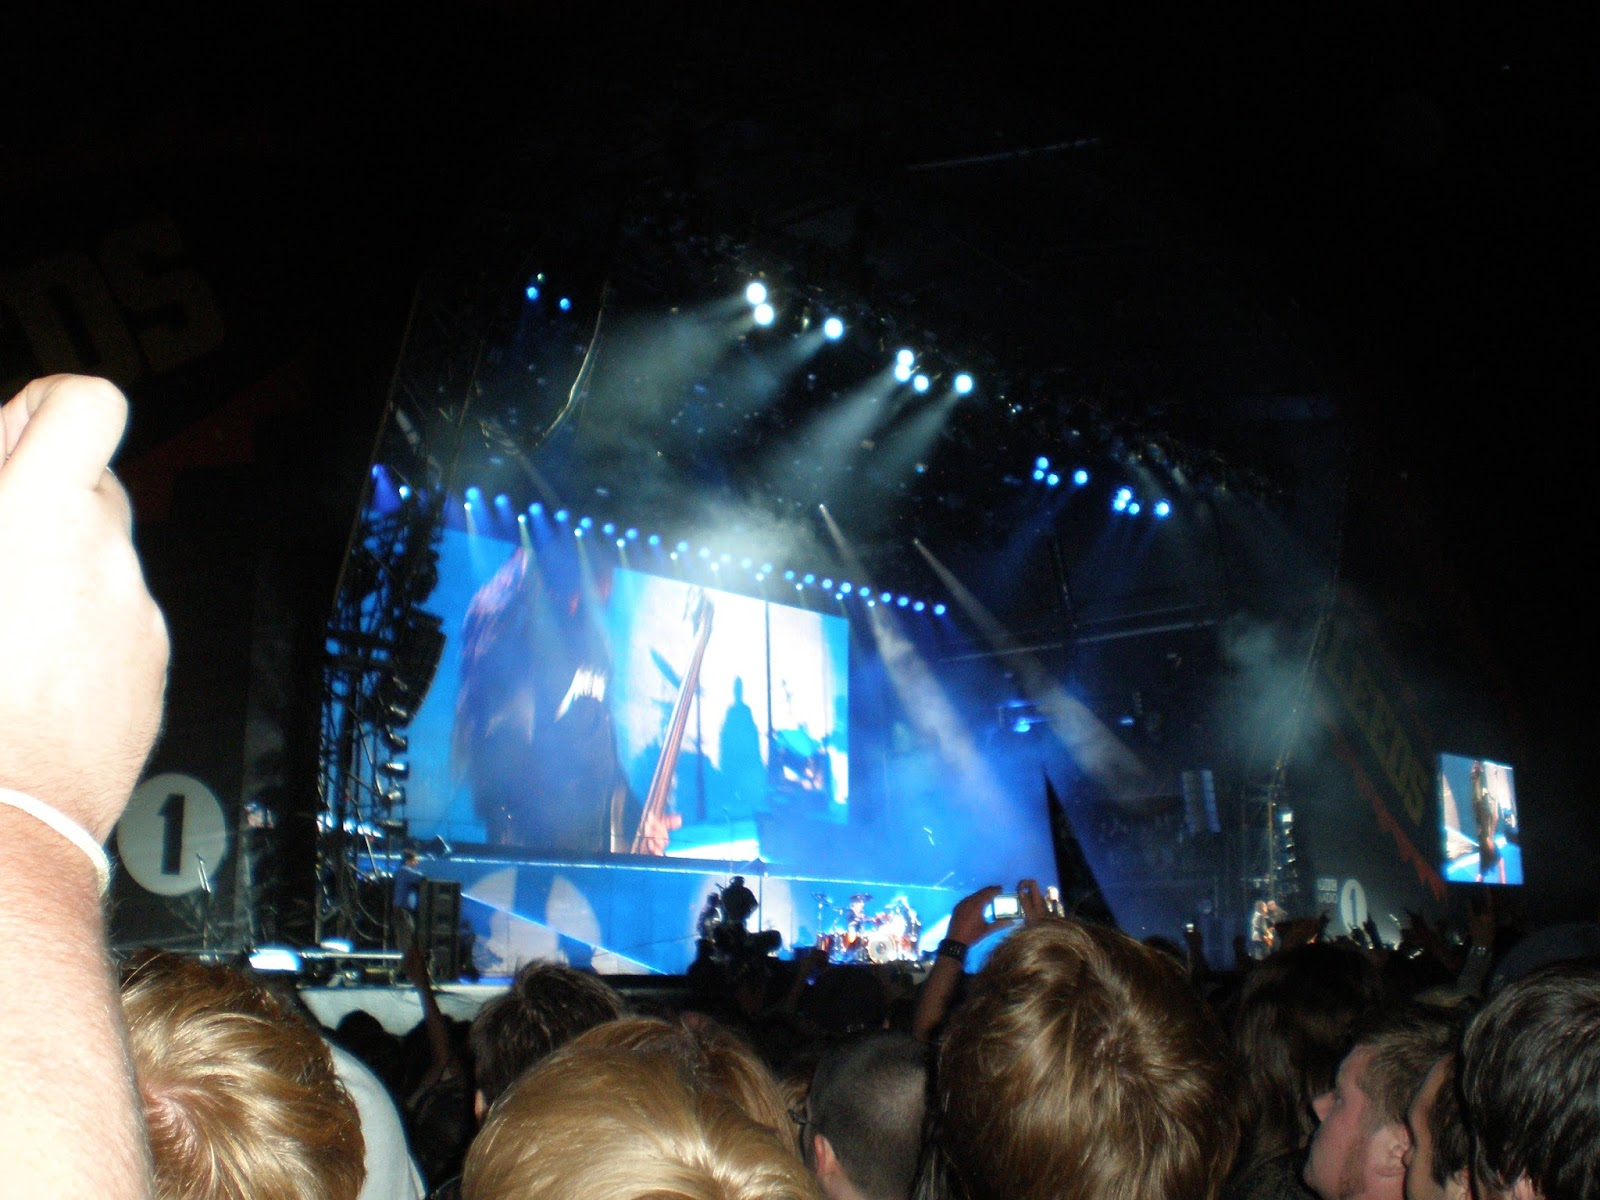 Leeds festival, download, glastonbury, sonisphere, donnington, castle, farm, metal, heavy, metallica, meet and greet, james hetfield, rob t, lars ulrich, kirk hammet, sonisphere, autograph, signed, meeting, heavy metal, festival, gig, knebworth, rail